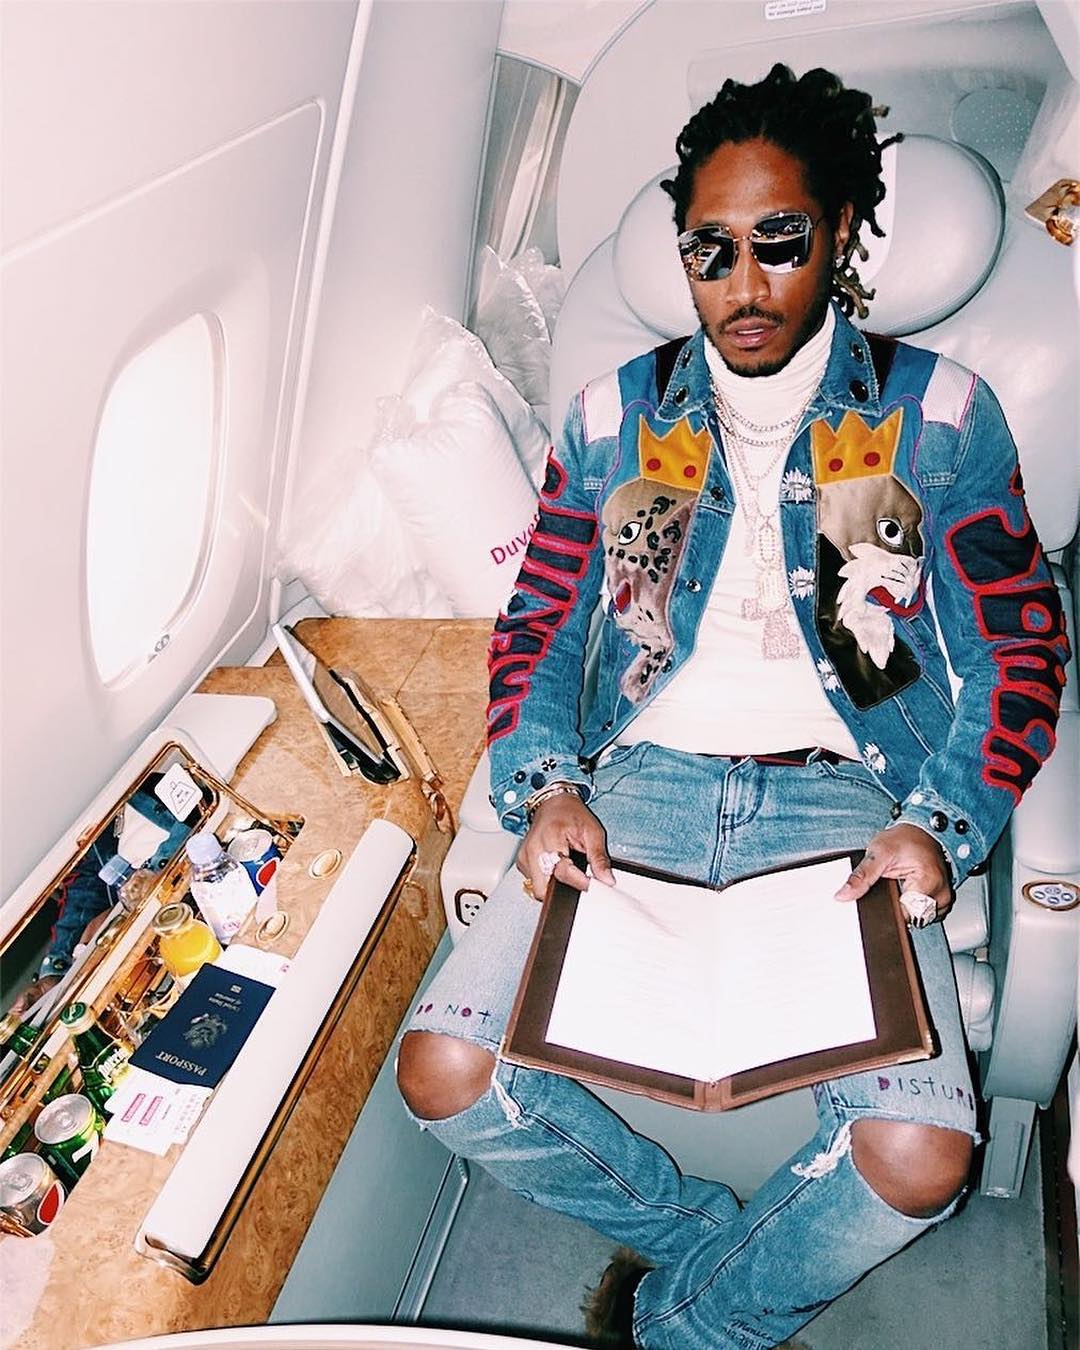 SPOTTED: Future in Dolce & Gabbana and RtA Brand